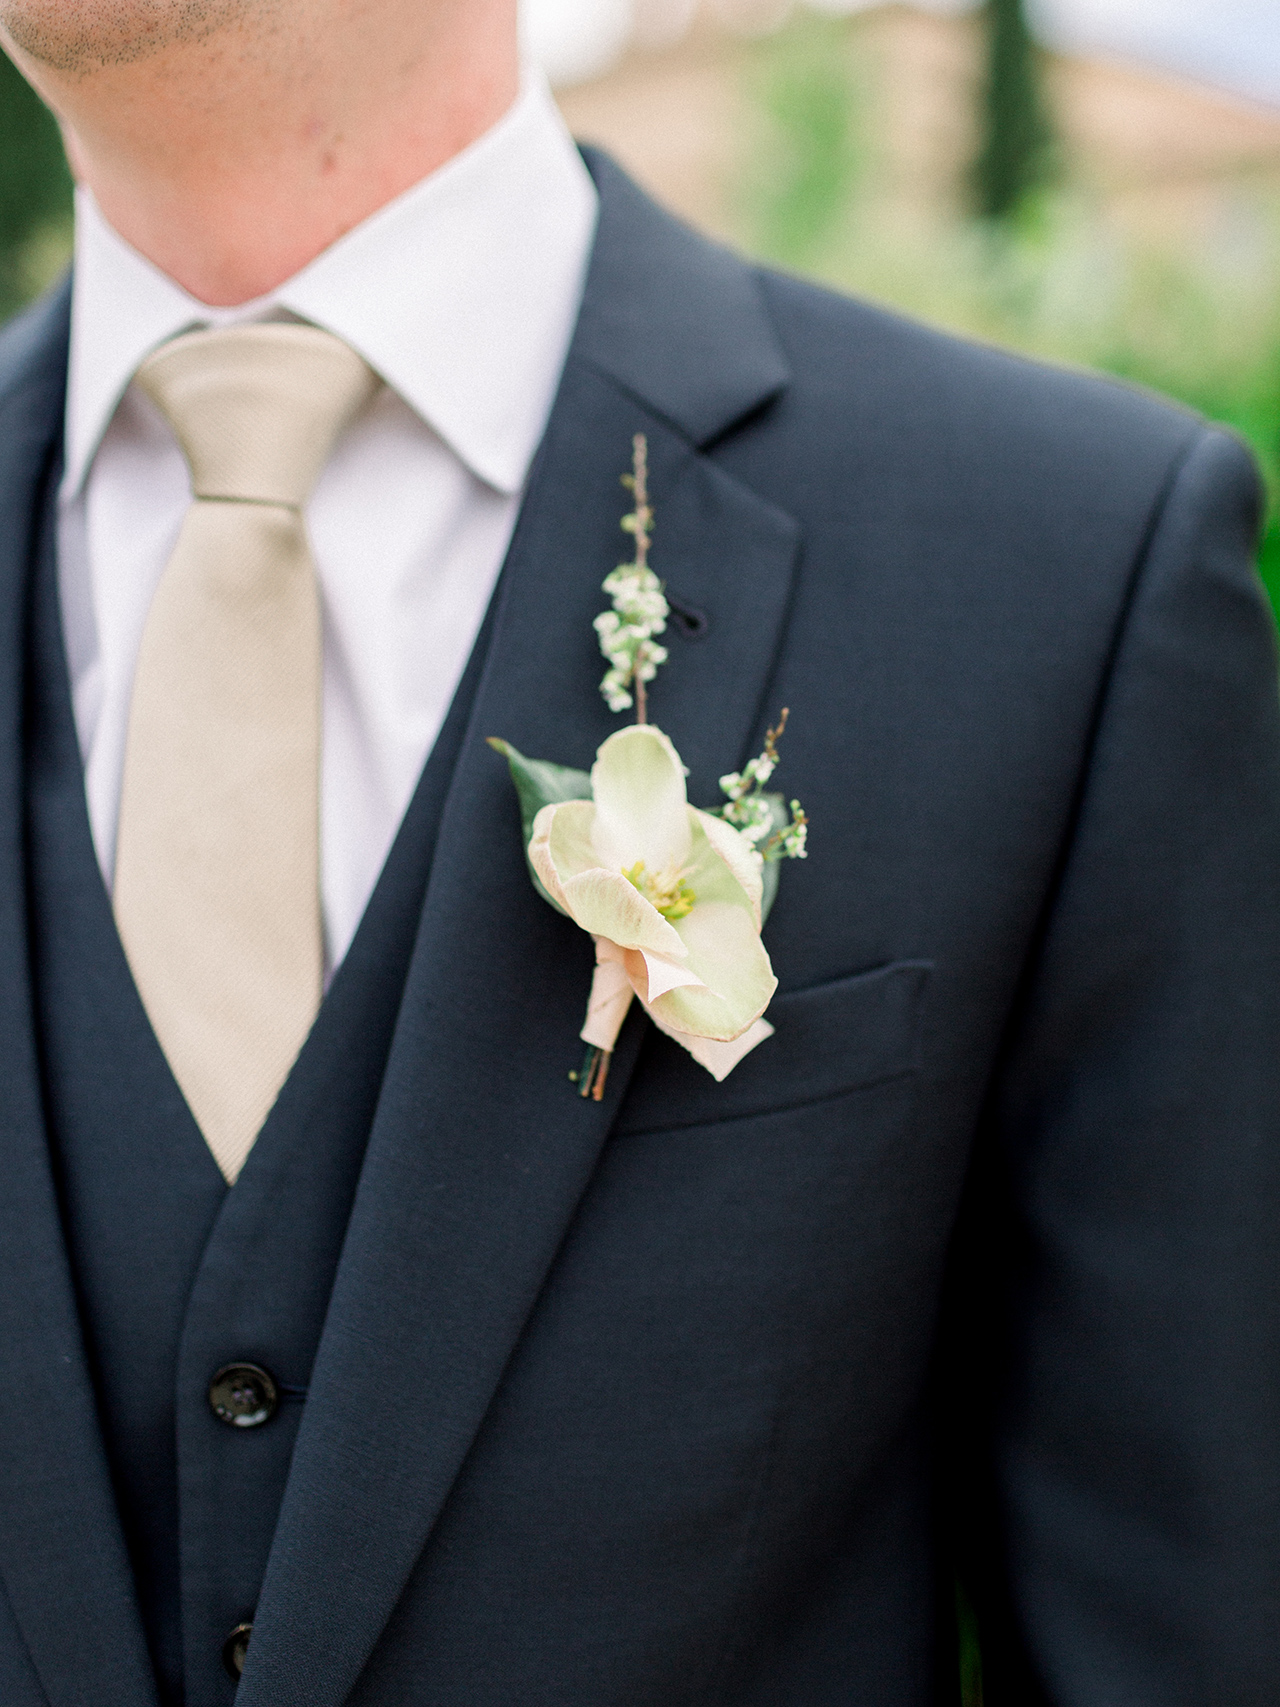 hellebore blossom grooms boutonniere